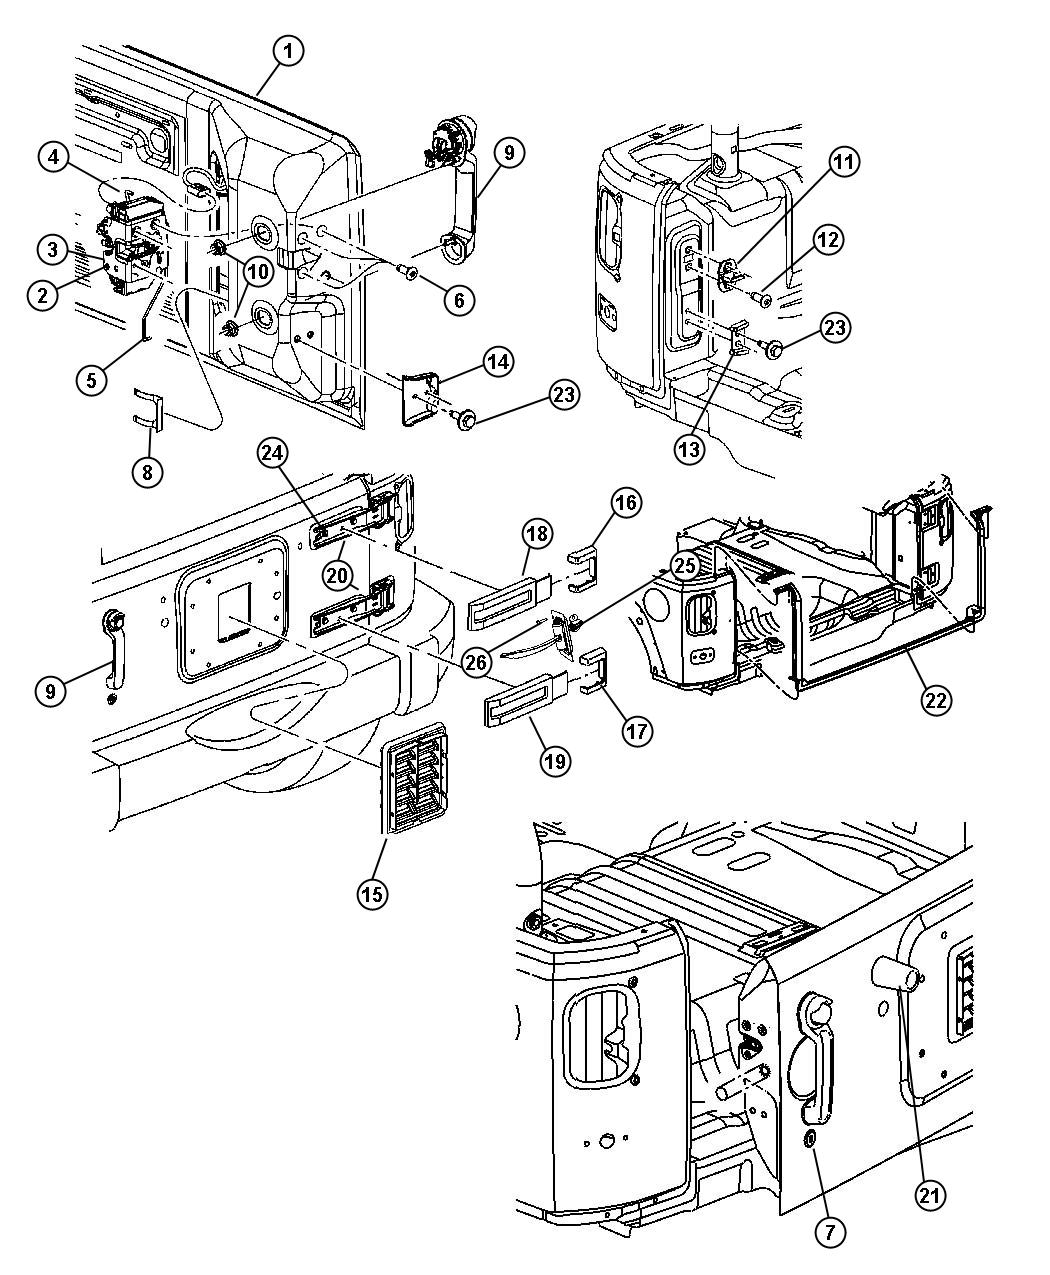 2007 jeep wrangler parts diagram home audio wiring diagrams 2015 oem free engine image